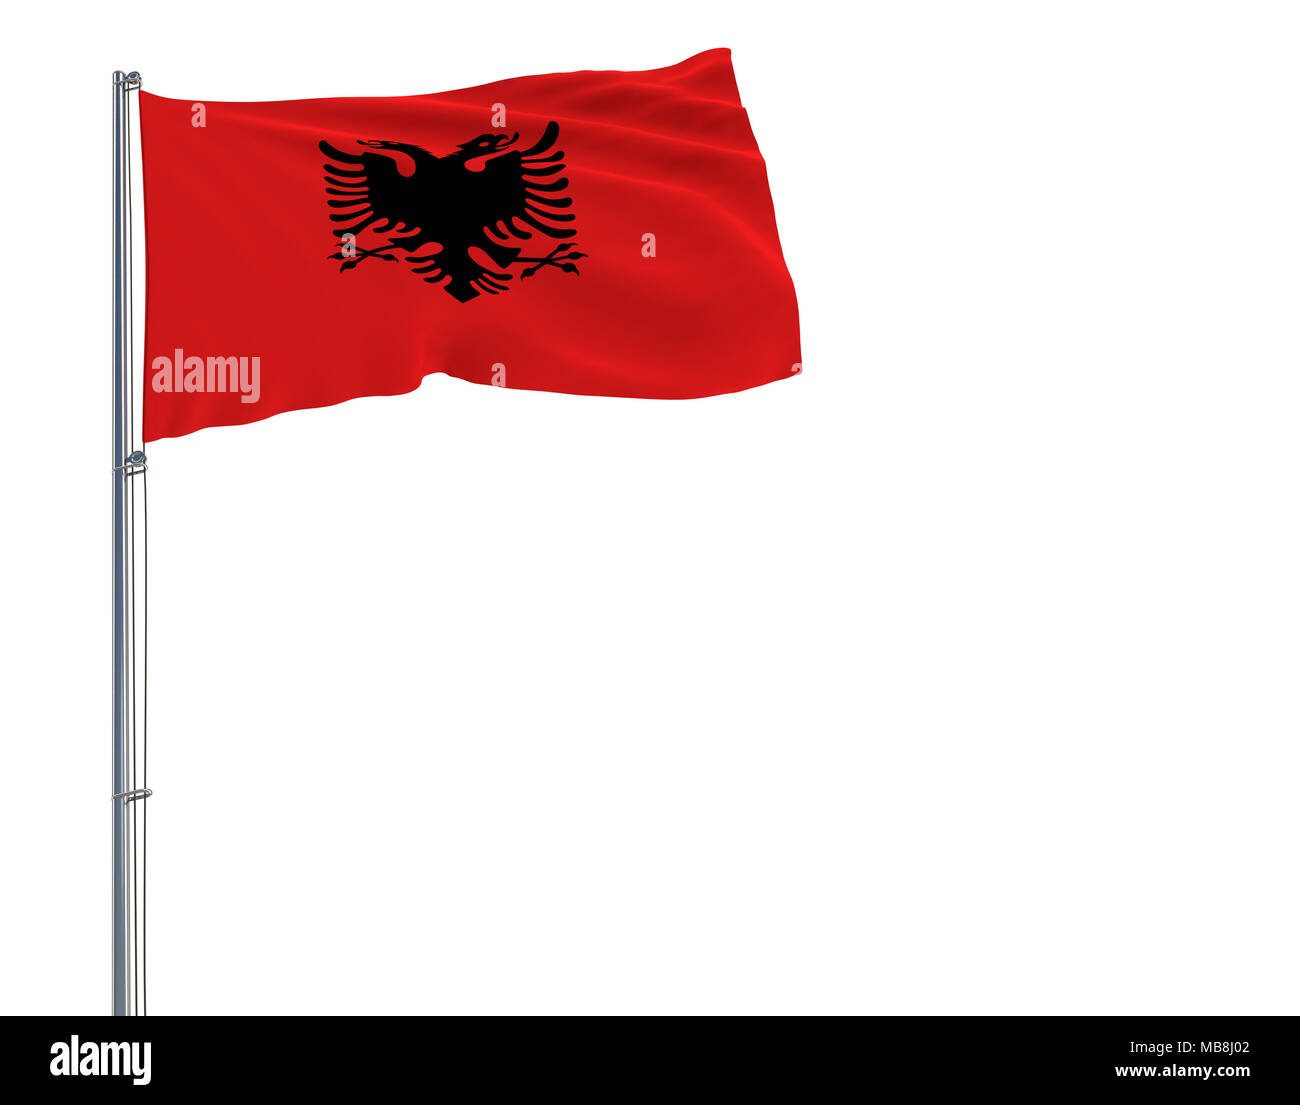 Isolate flag of Albania on a flagpole fluttering in the wind on a white background, 3d rendering - Stock Image